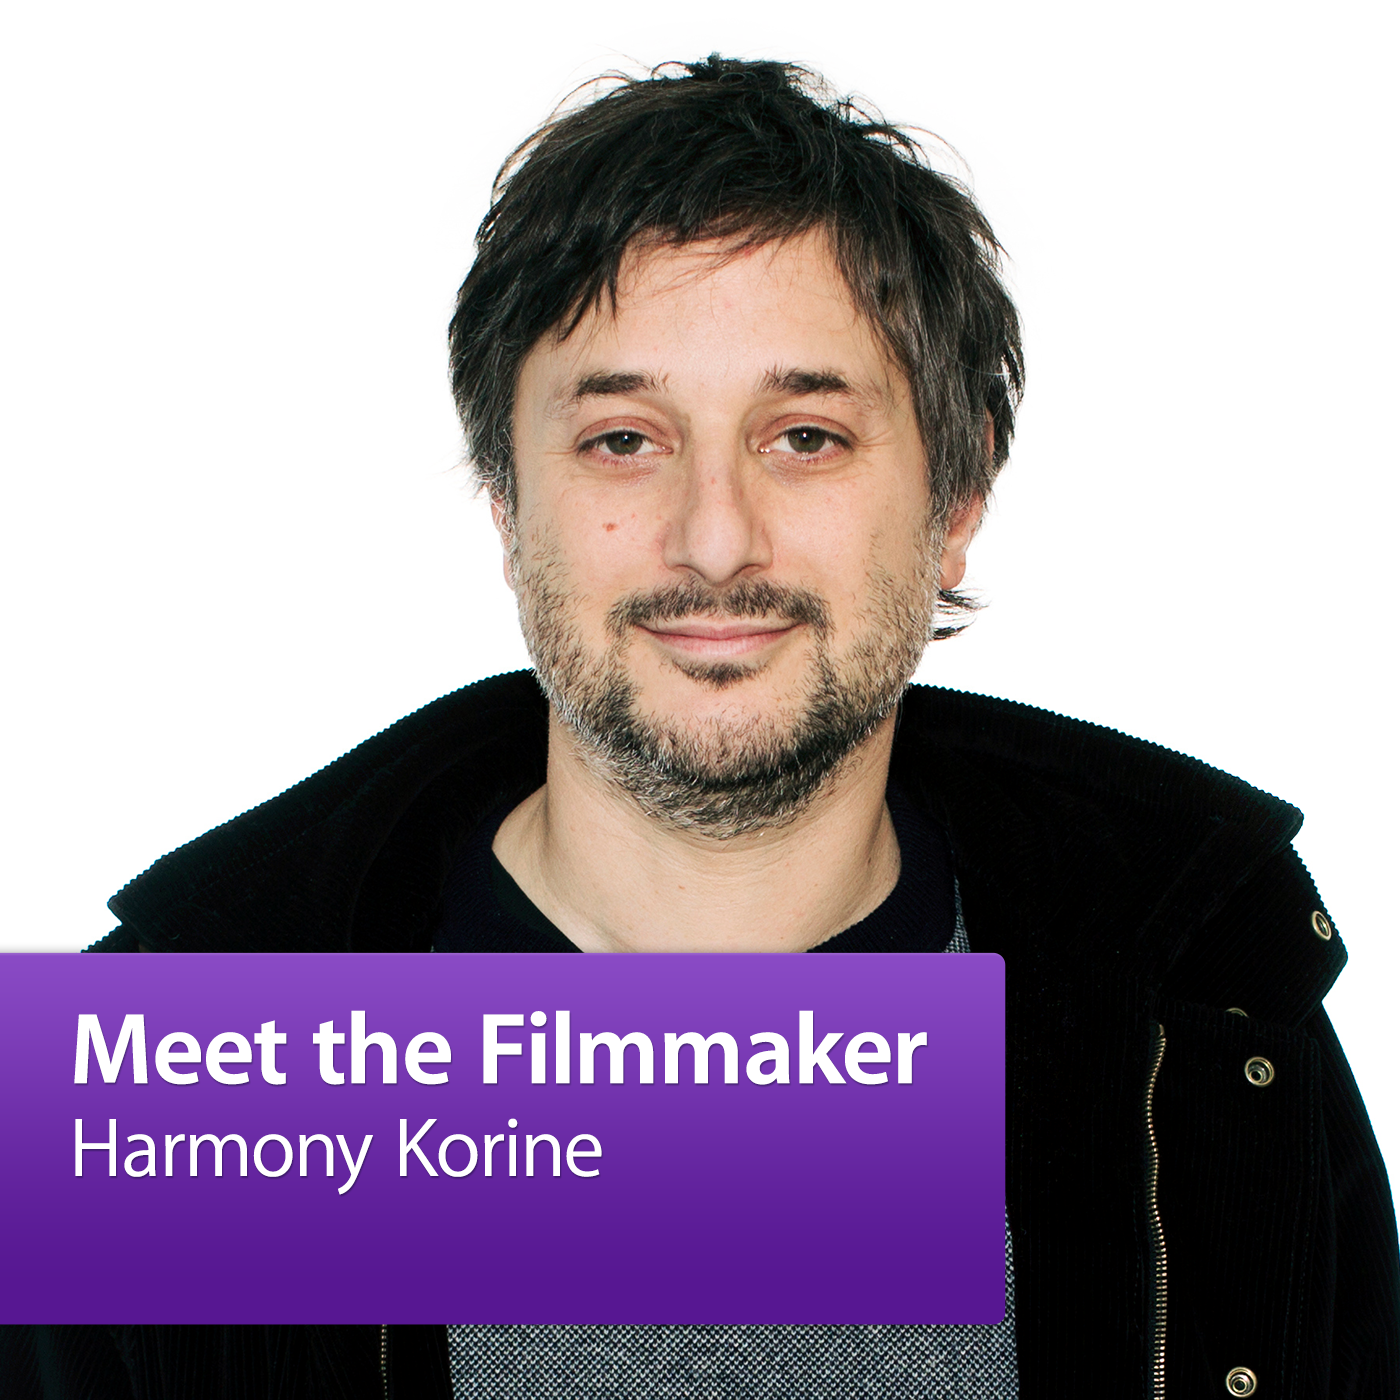 Harmony Korine: Meet the Filmmaker